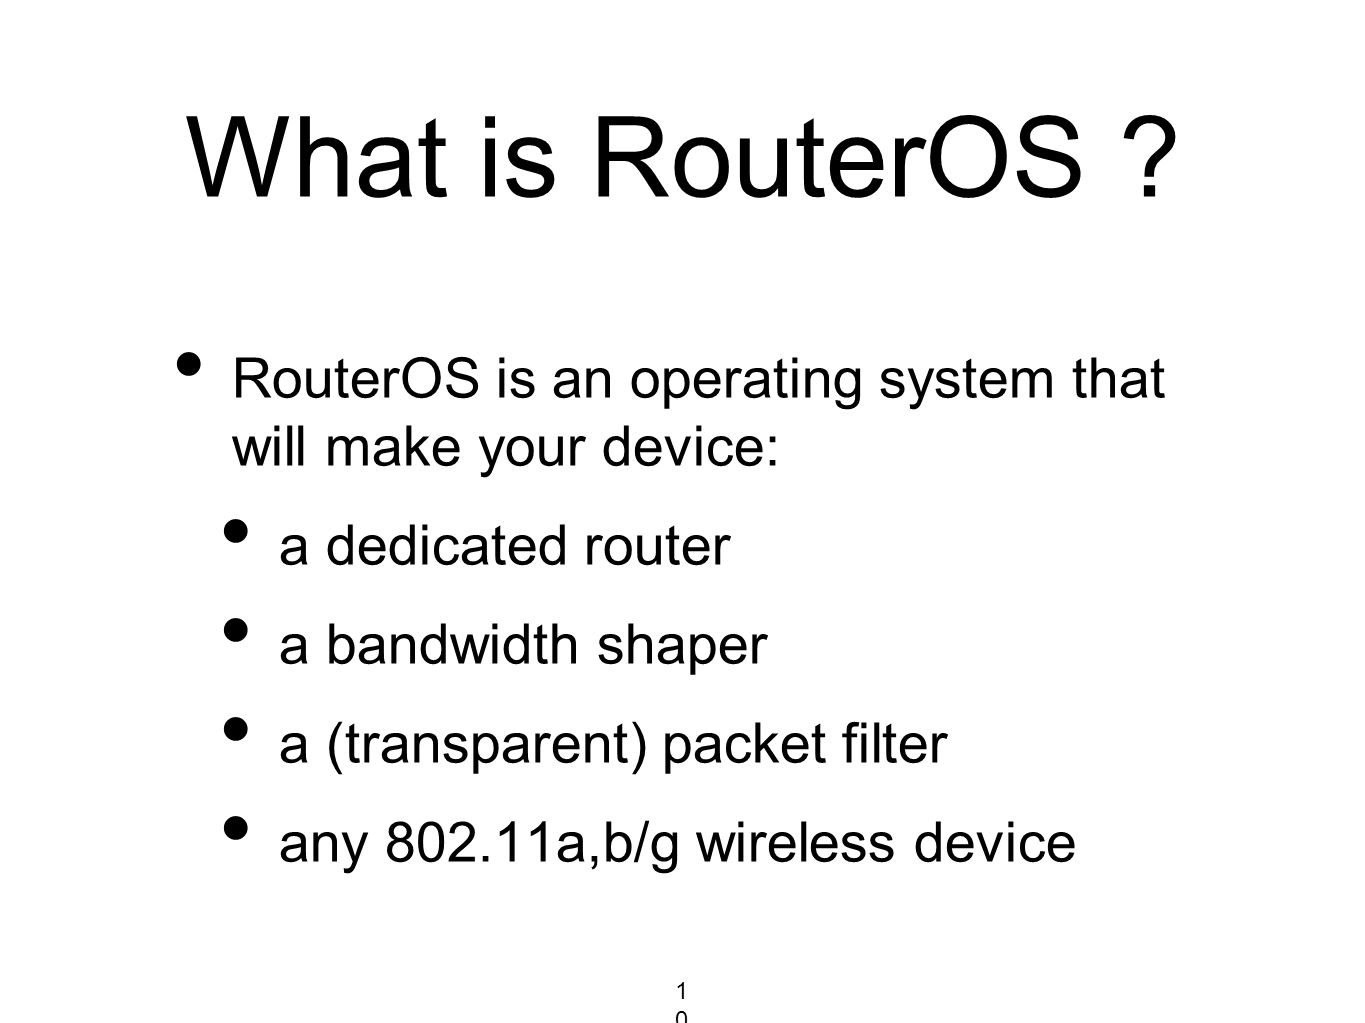 What is RouterOS ? RouterOS is an operating system that will make your device: a dedicated router a bandwidth shaper a (transparent) packet filter any